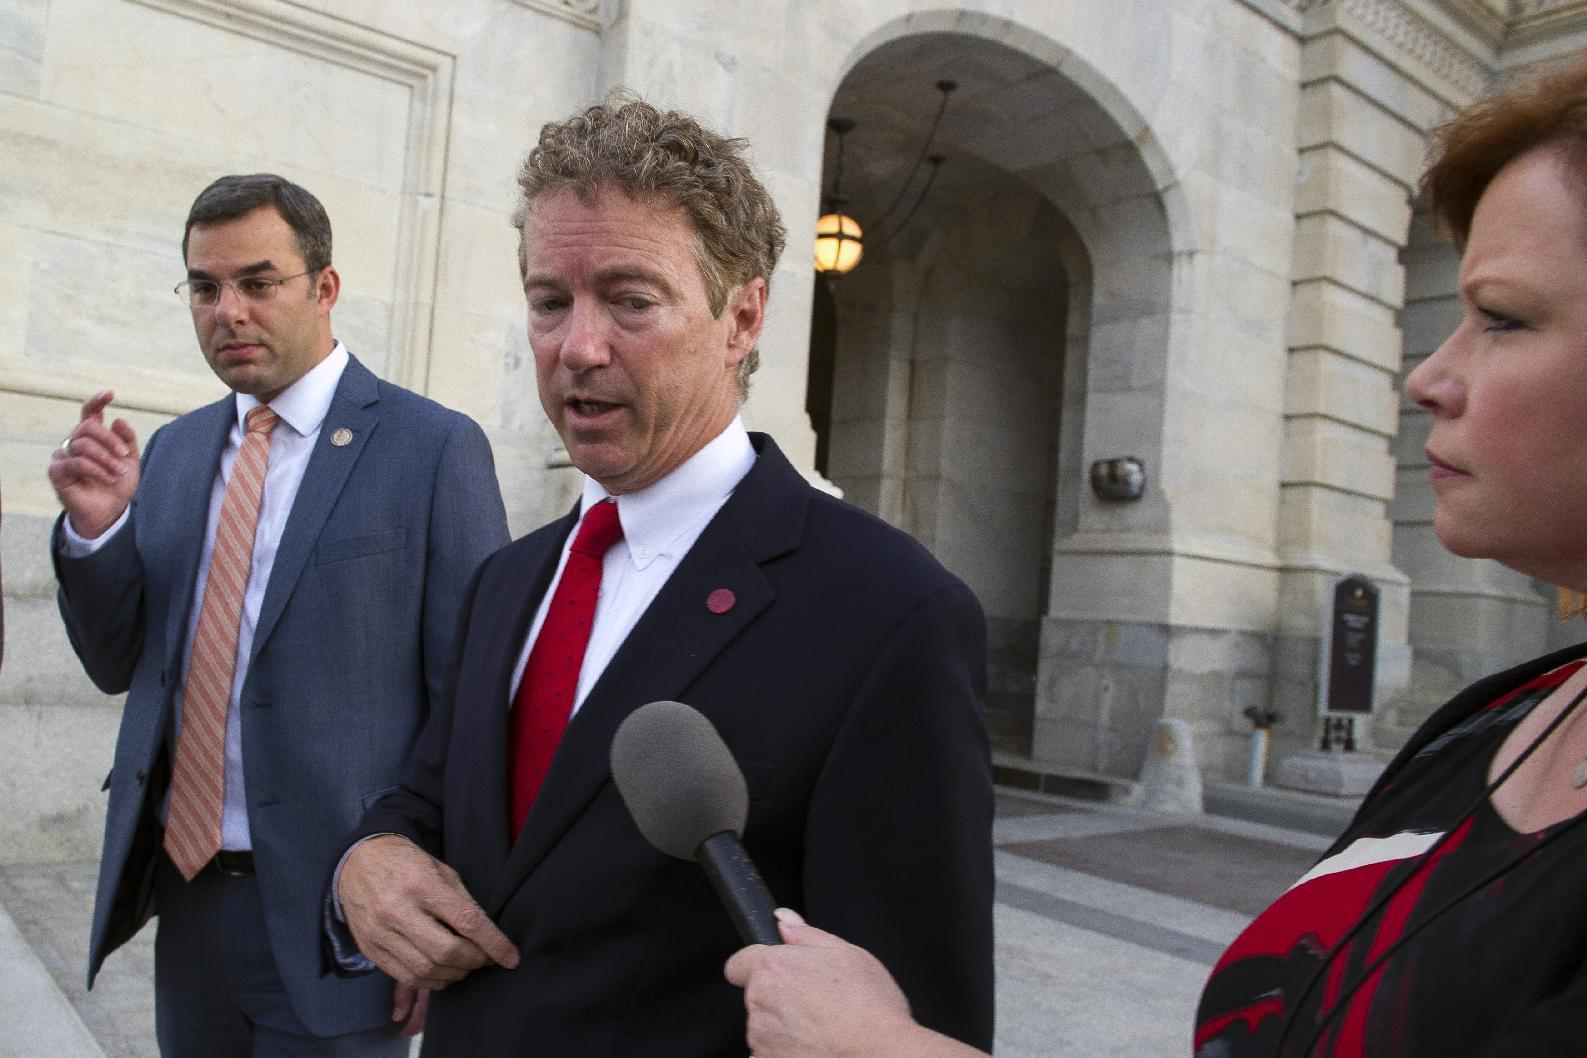 Analysis: By design, Paul stands alone in presidential race